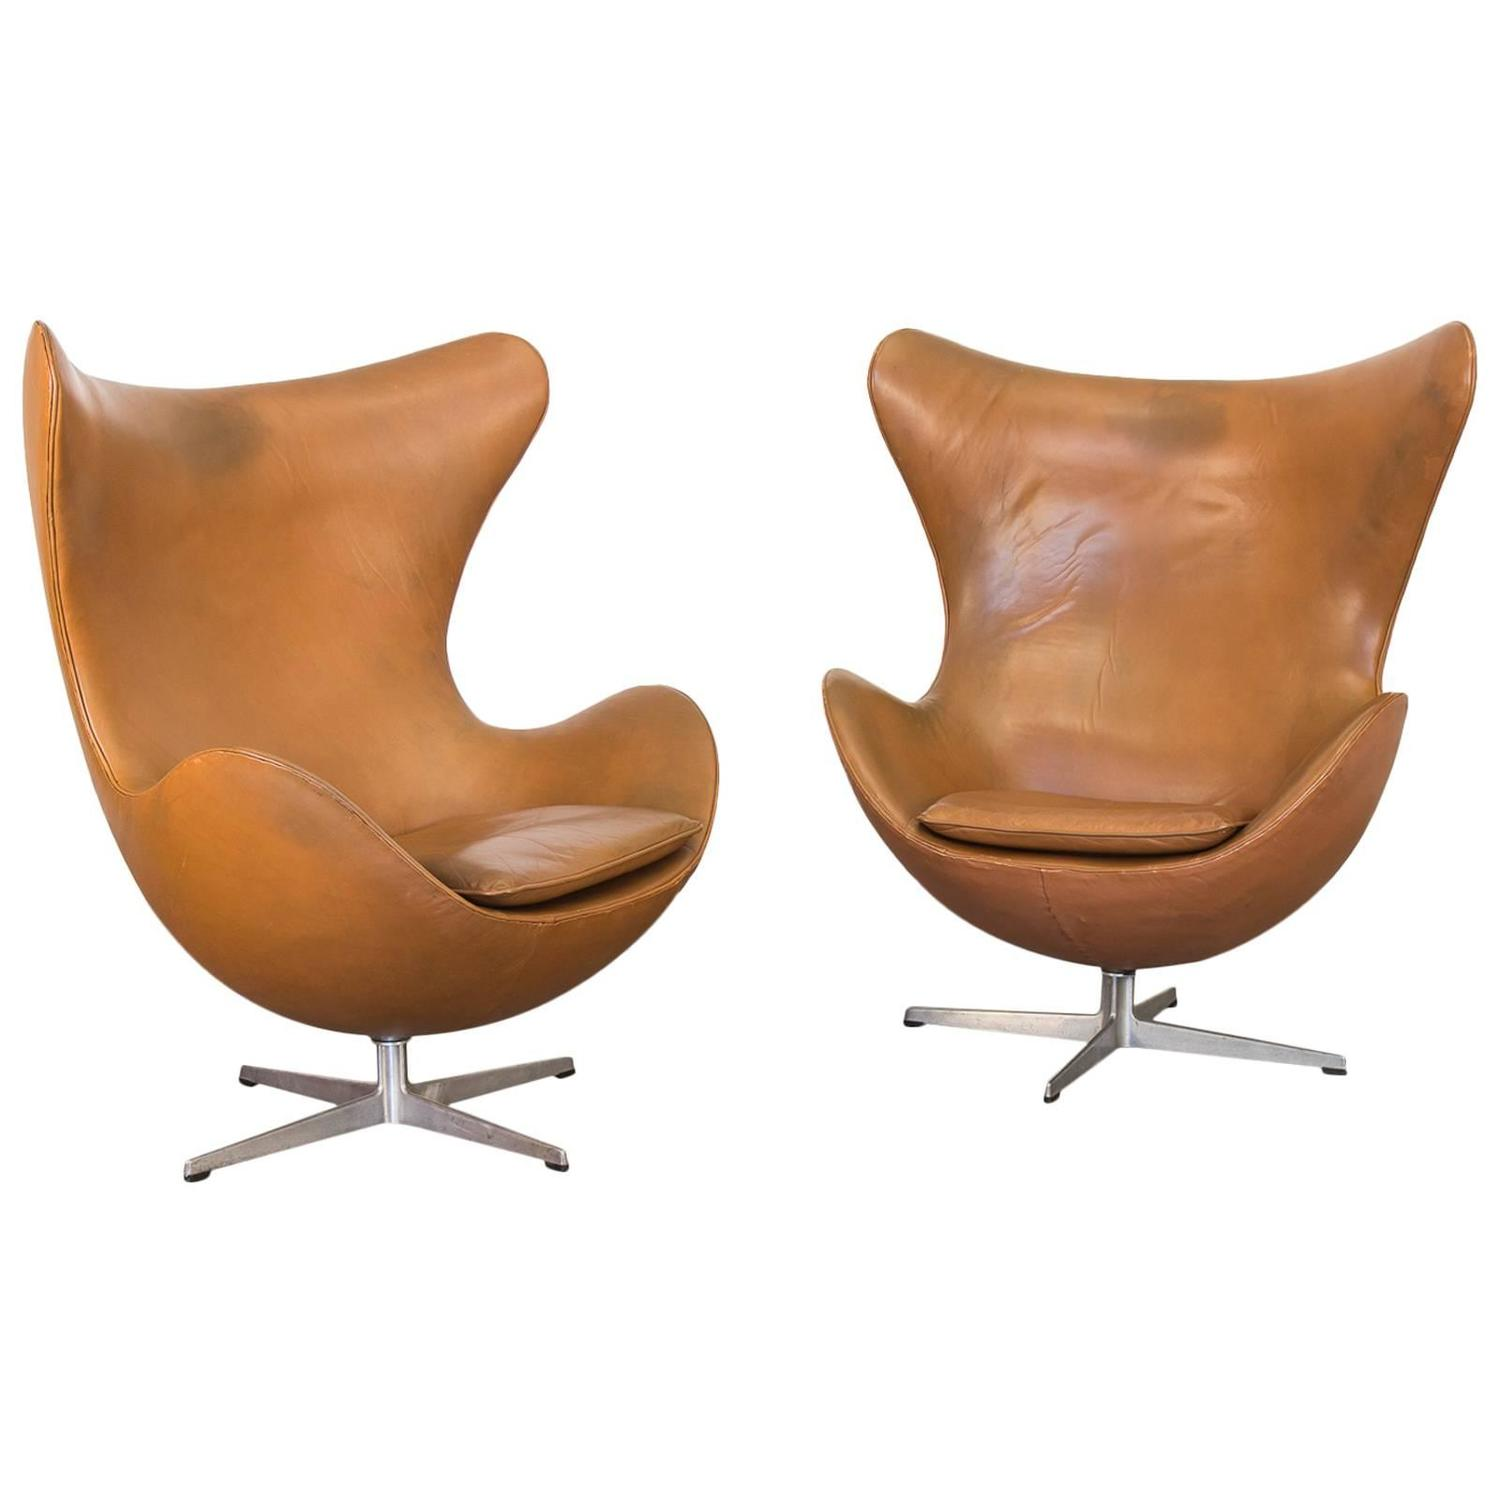 vintage leather egg chairs by arne jacobsen for sale at 1stdibs. Black Bedroom Furniture Sets. Home Design Ideas